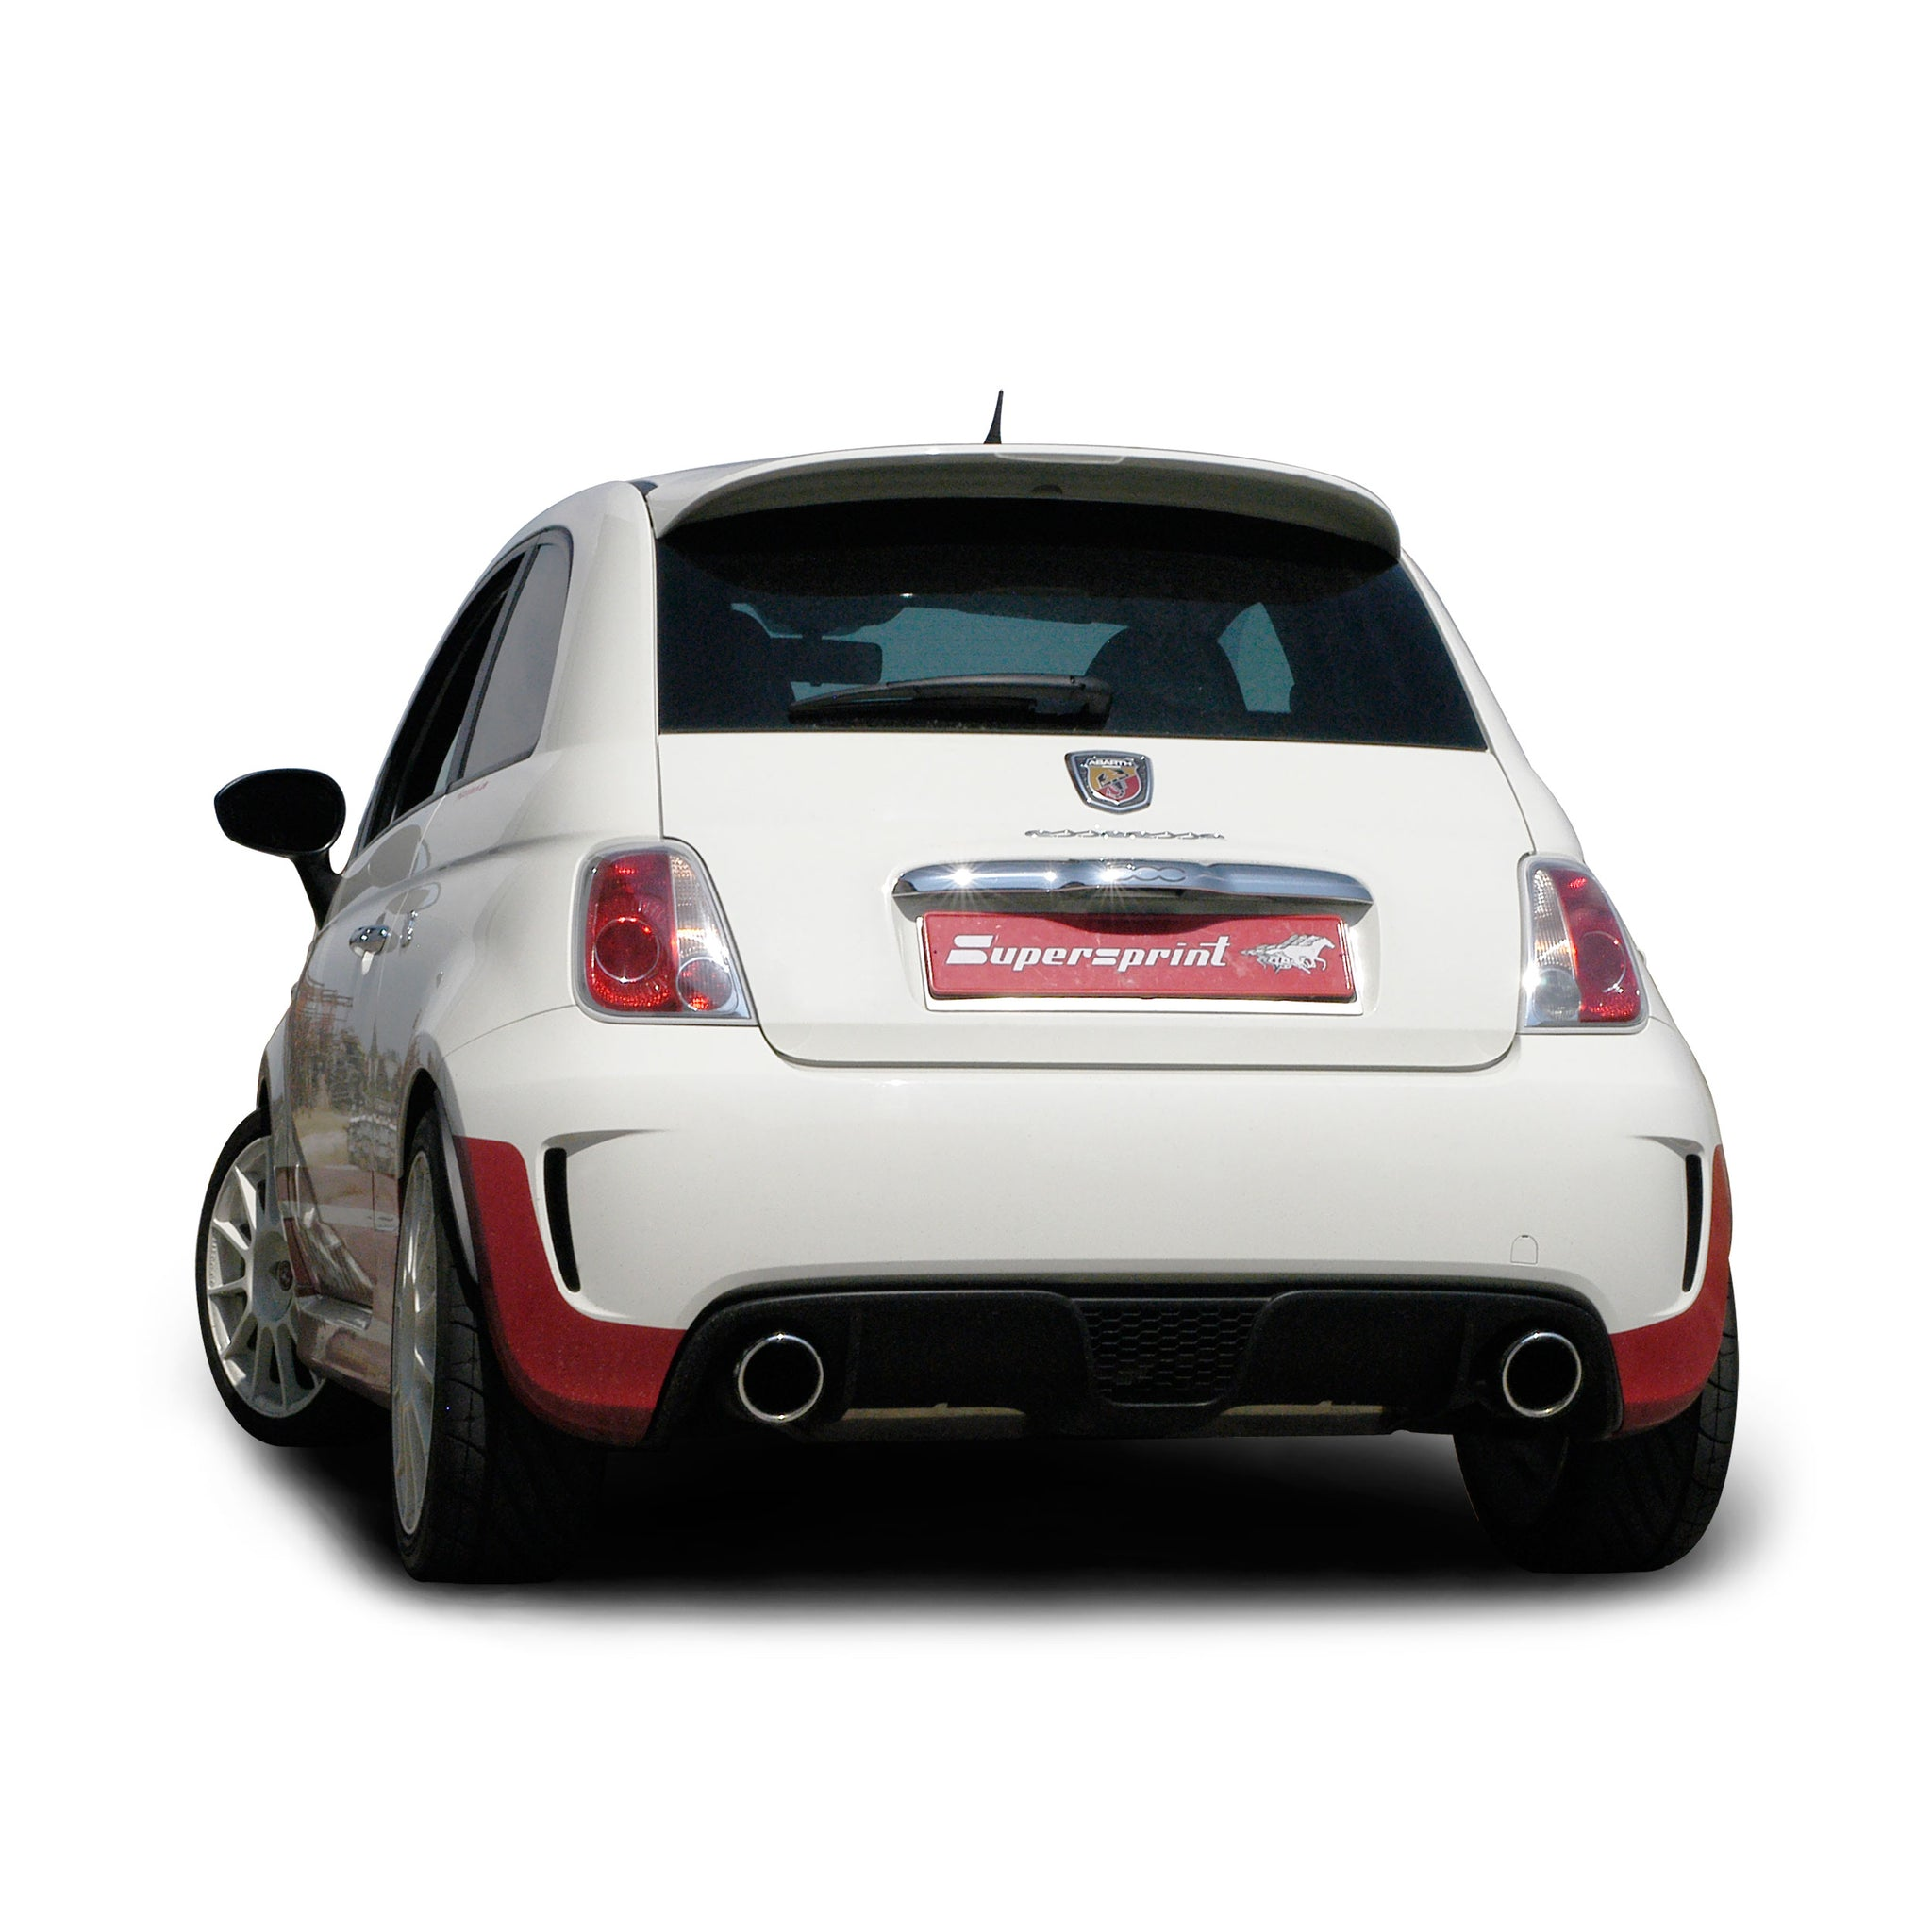 SUPERSPRINT STREET PERFORMANCE PACK EXHAUST SYSTEM (FIAT